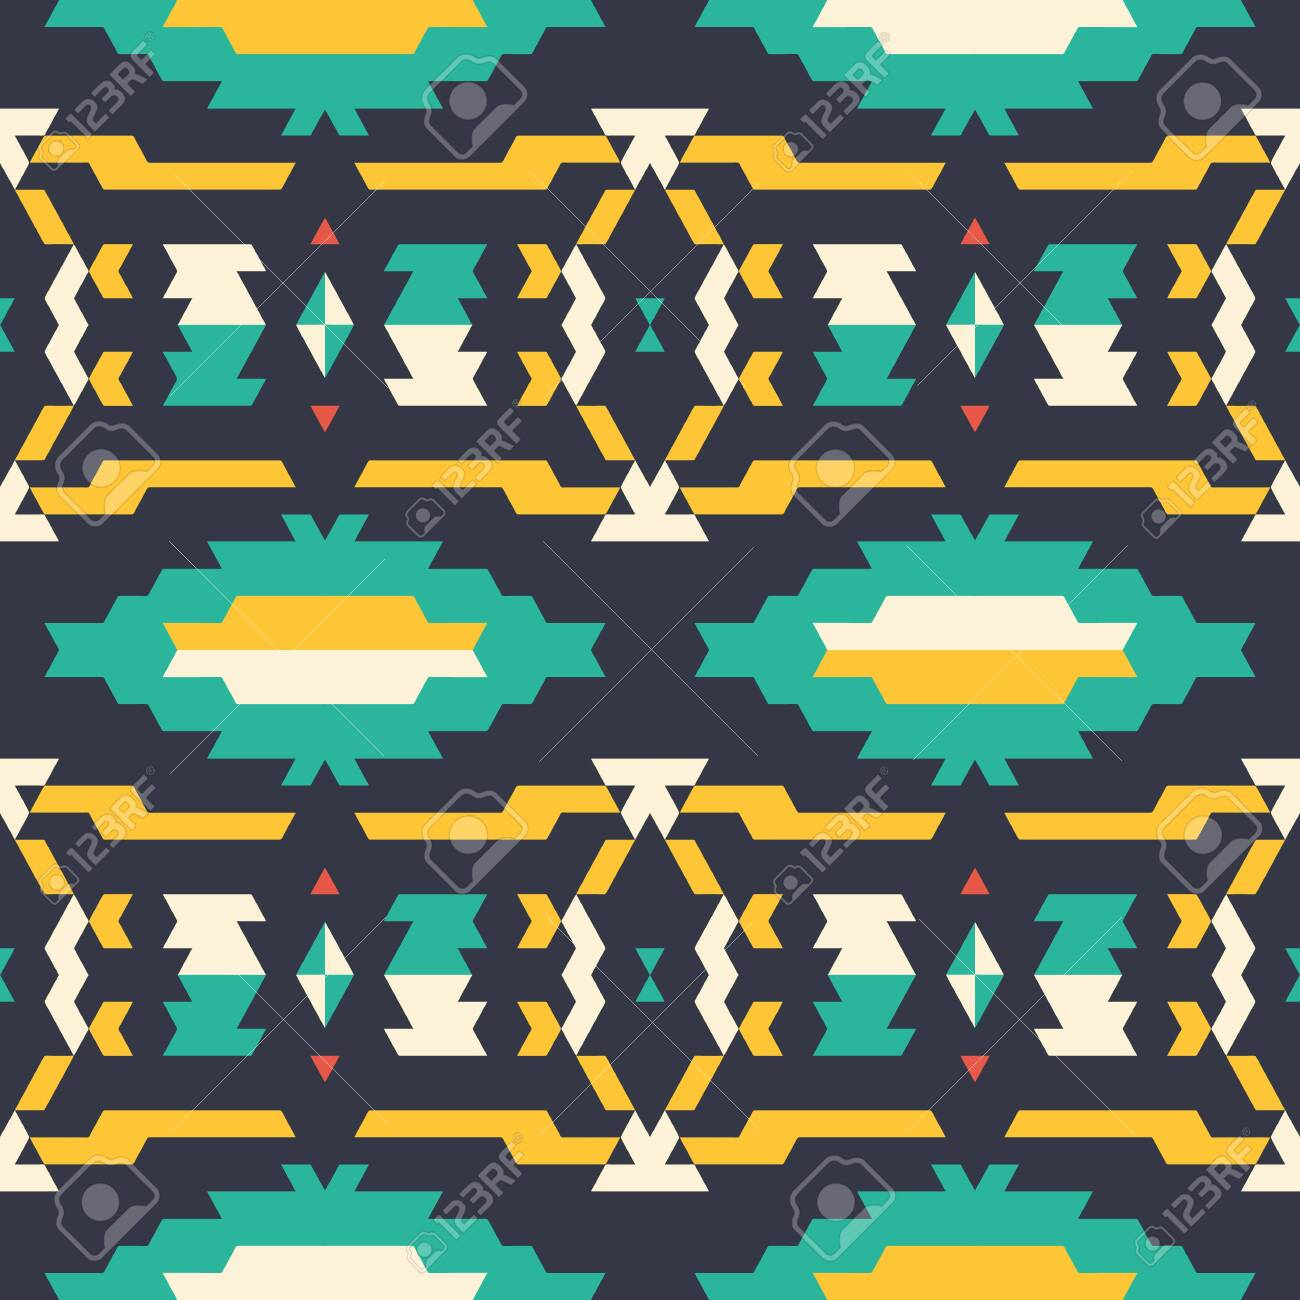 Aztec tribal seamless yellow and turquoise pattern on black background